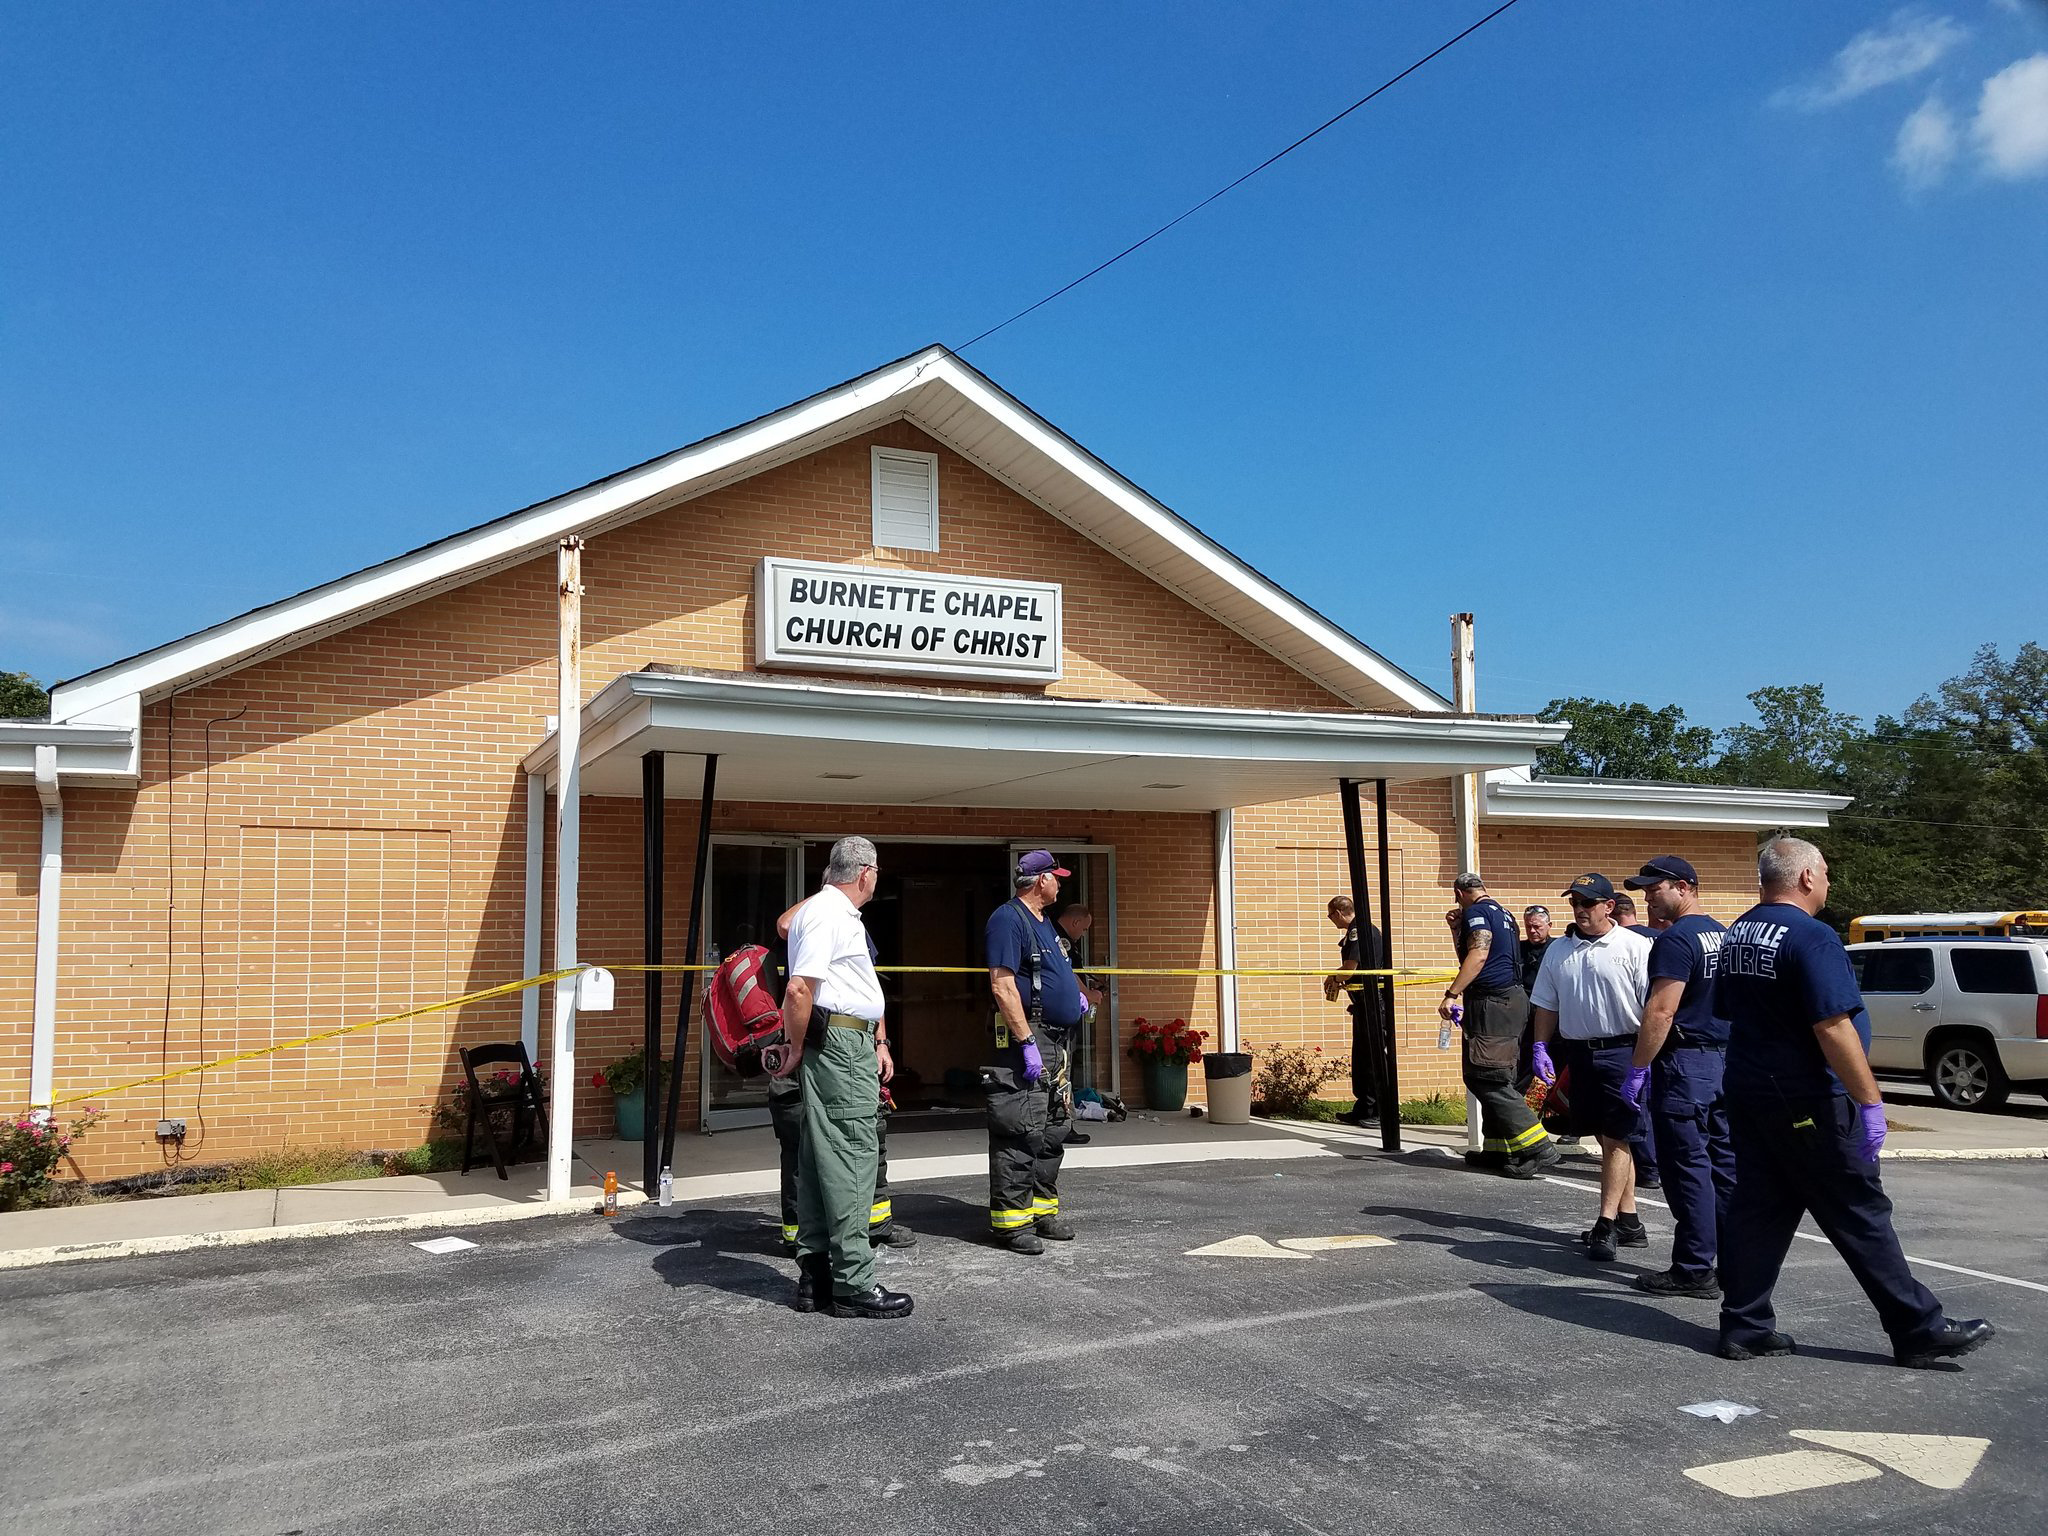 Suspect Charged With Murder in Mass Shooting at Tennessee Church